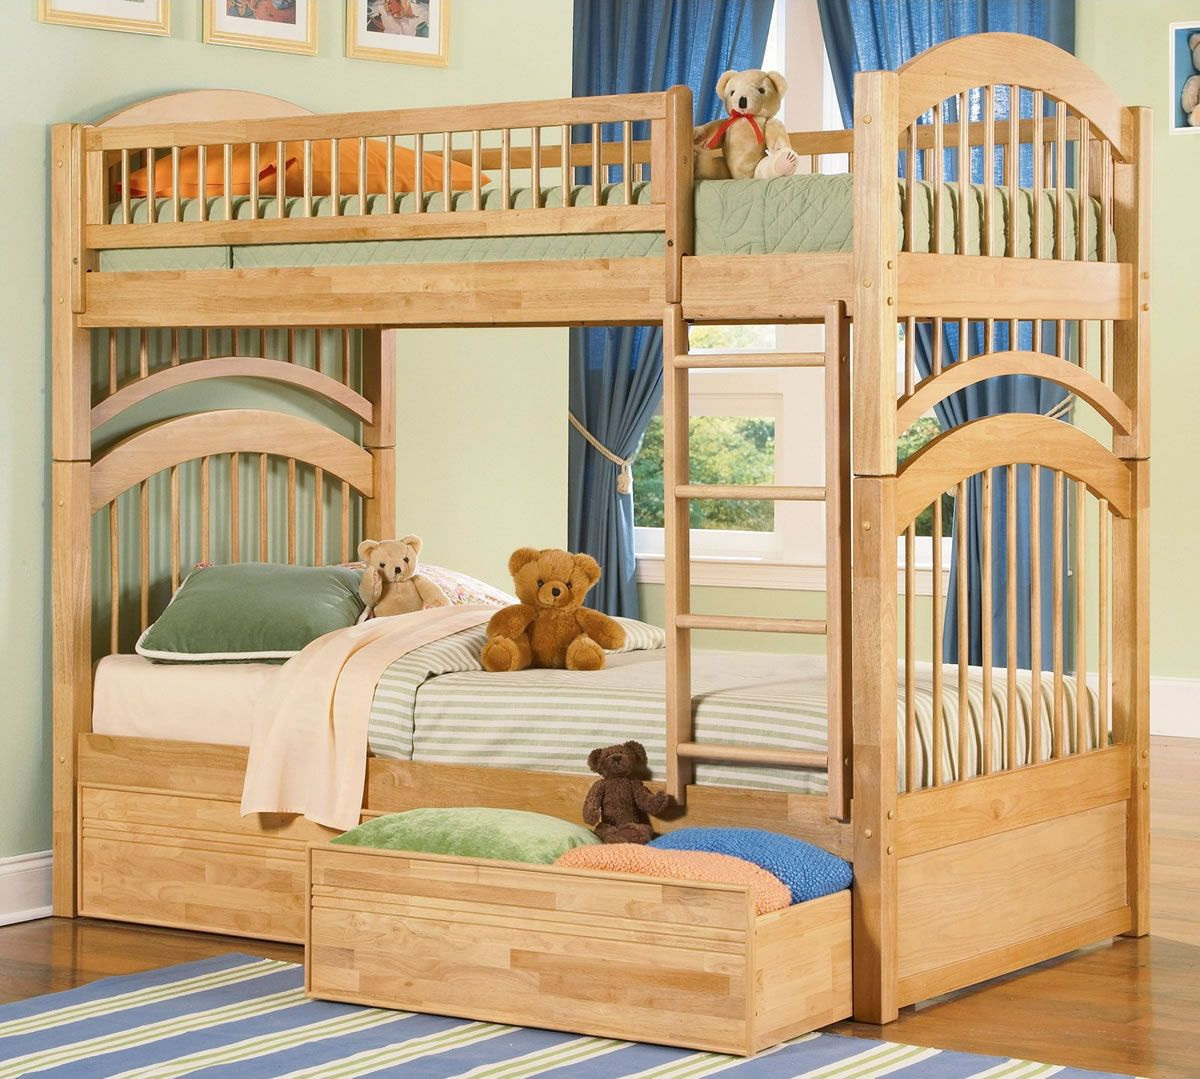 Best Of Stanley Bunk Bed Check More At Http Dust War Com Stanley